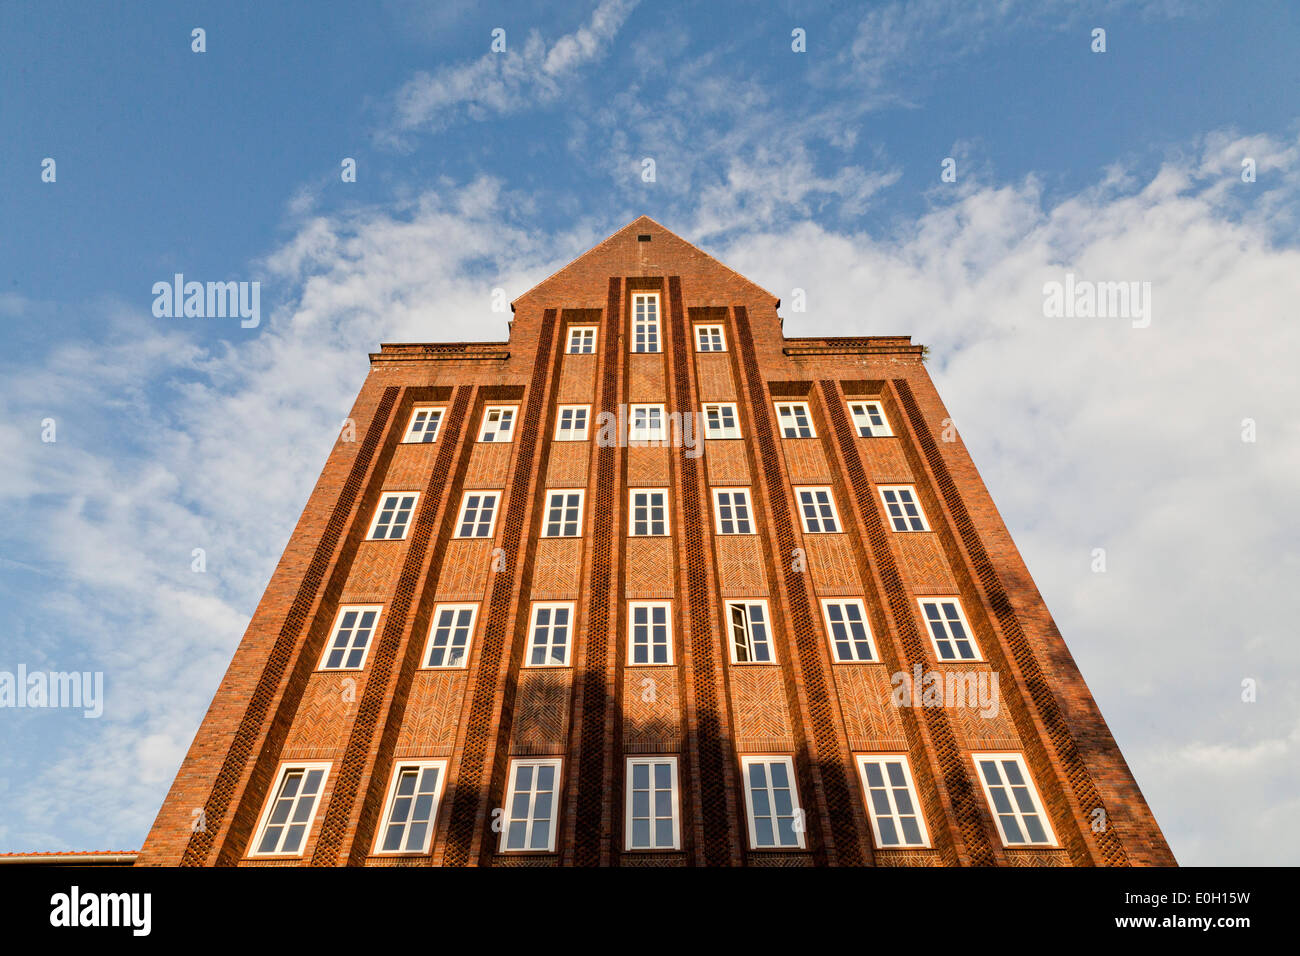 Haus der Wissenschaft, university with red brick fassade in late expressionism style which opened in 1937, shaped like a rocket, - Stock Image